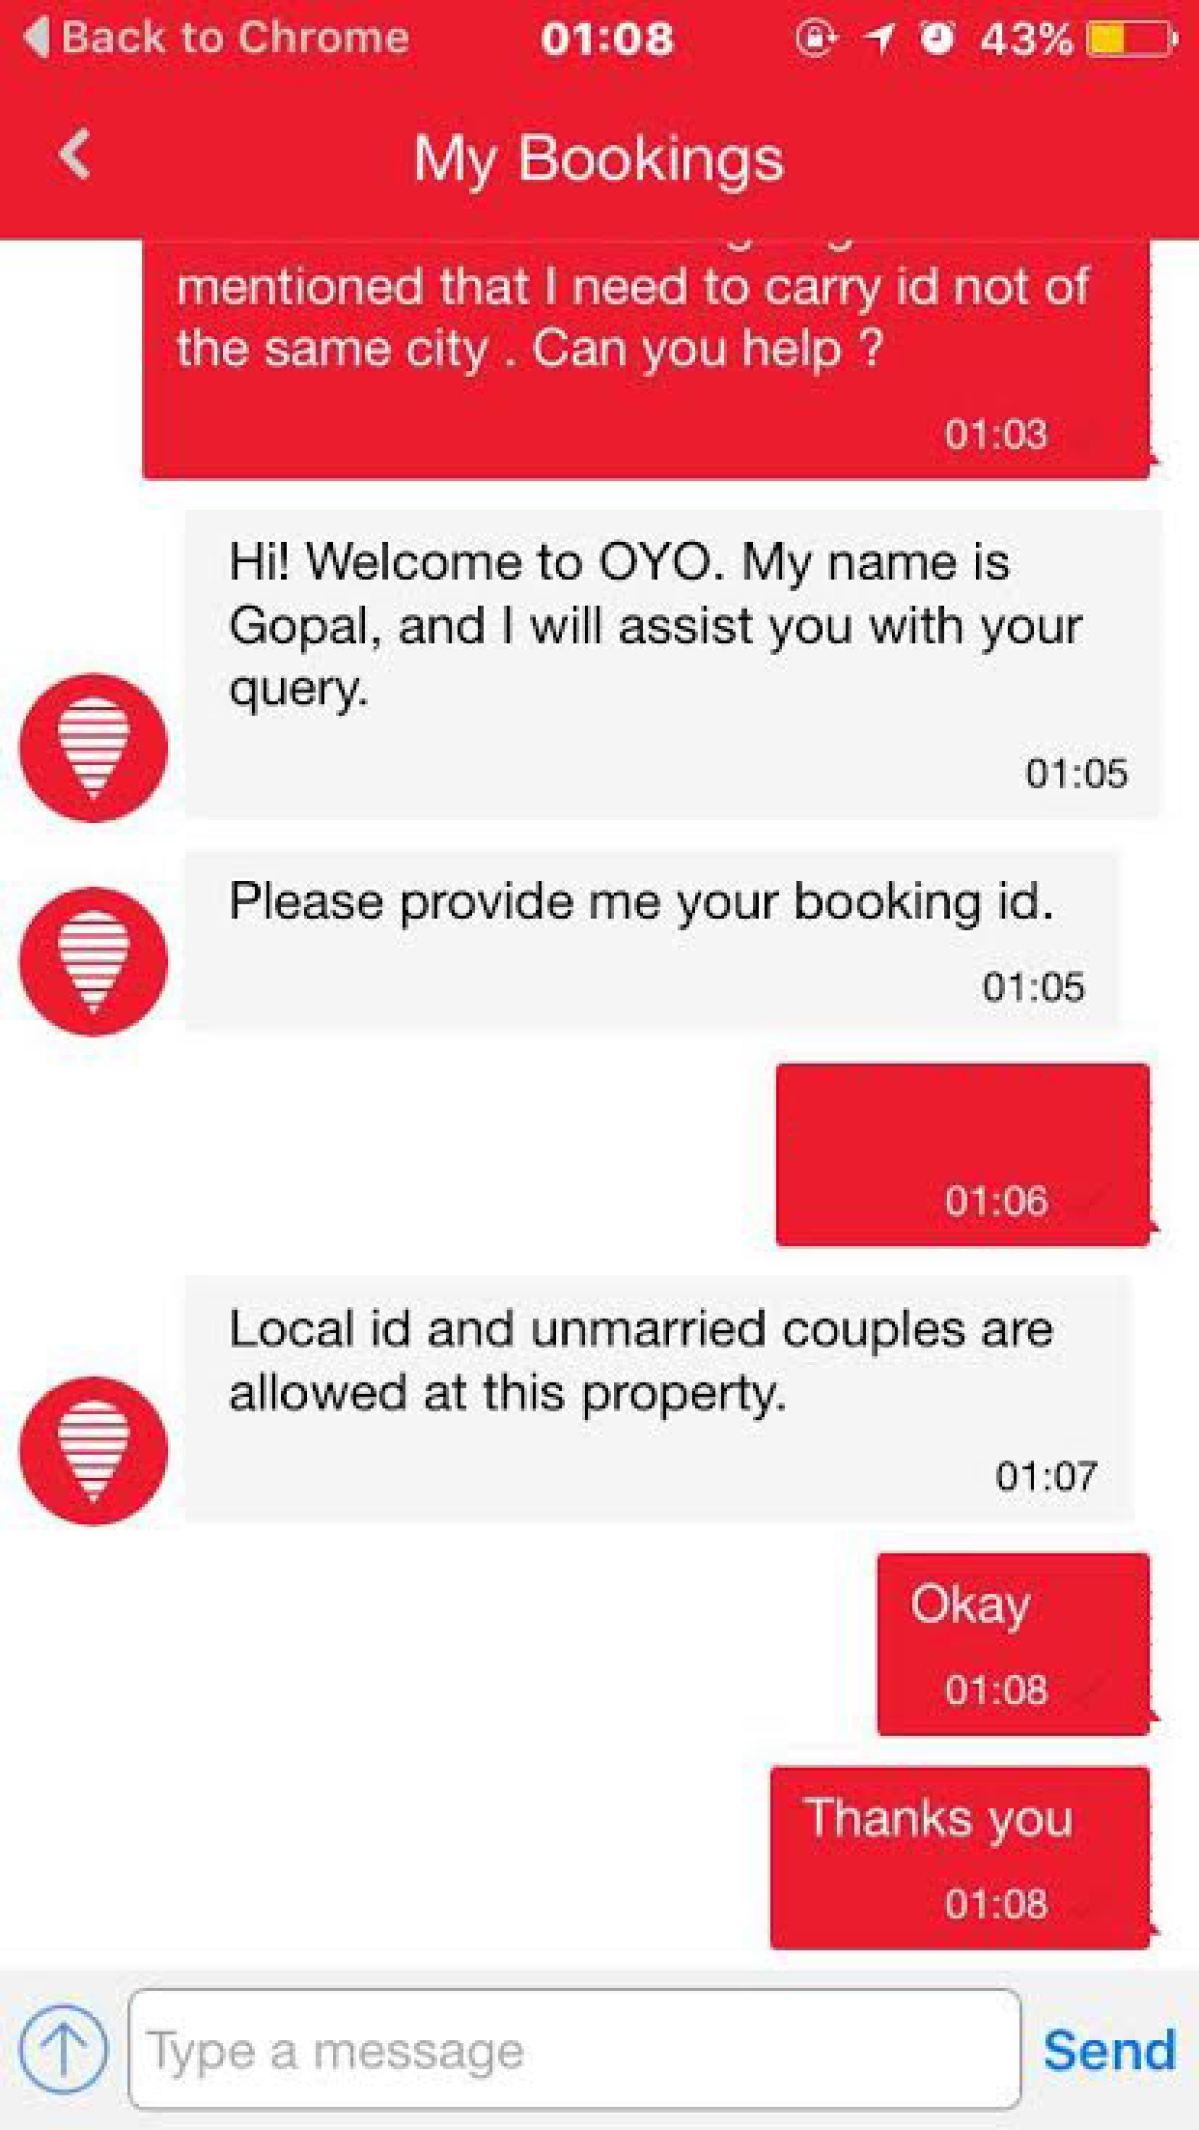 From no rooms to oyo rooms for unmarried couples the quint unmarried couples and local ids are allowed at some of oyo hotels photo screenshot thecheapjerseys Images